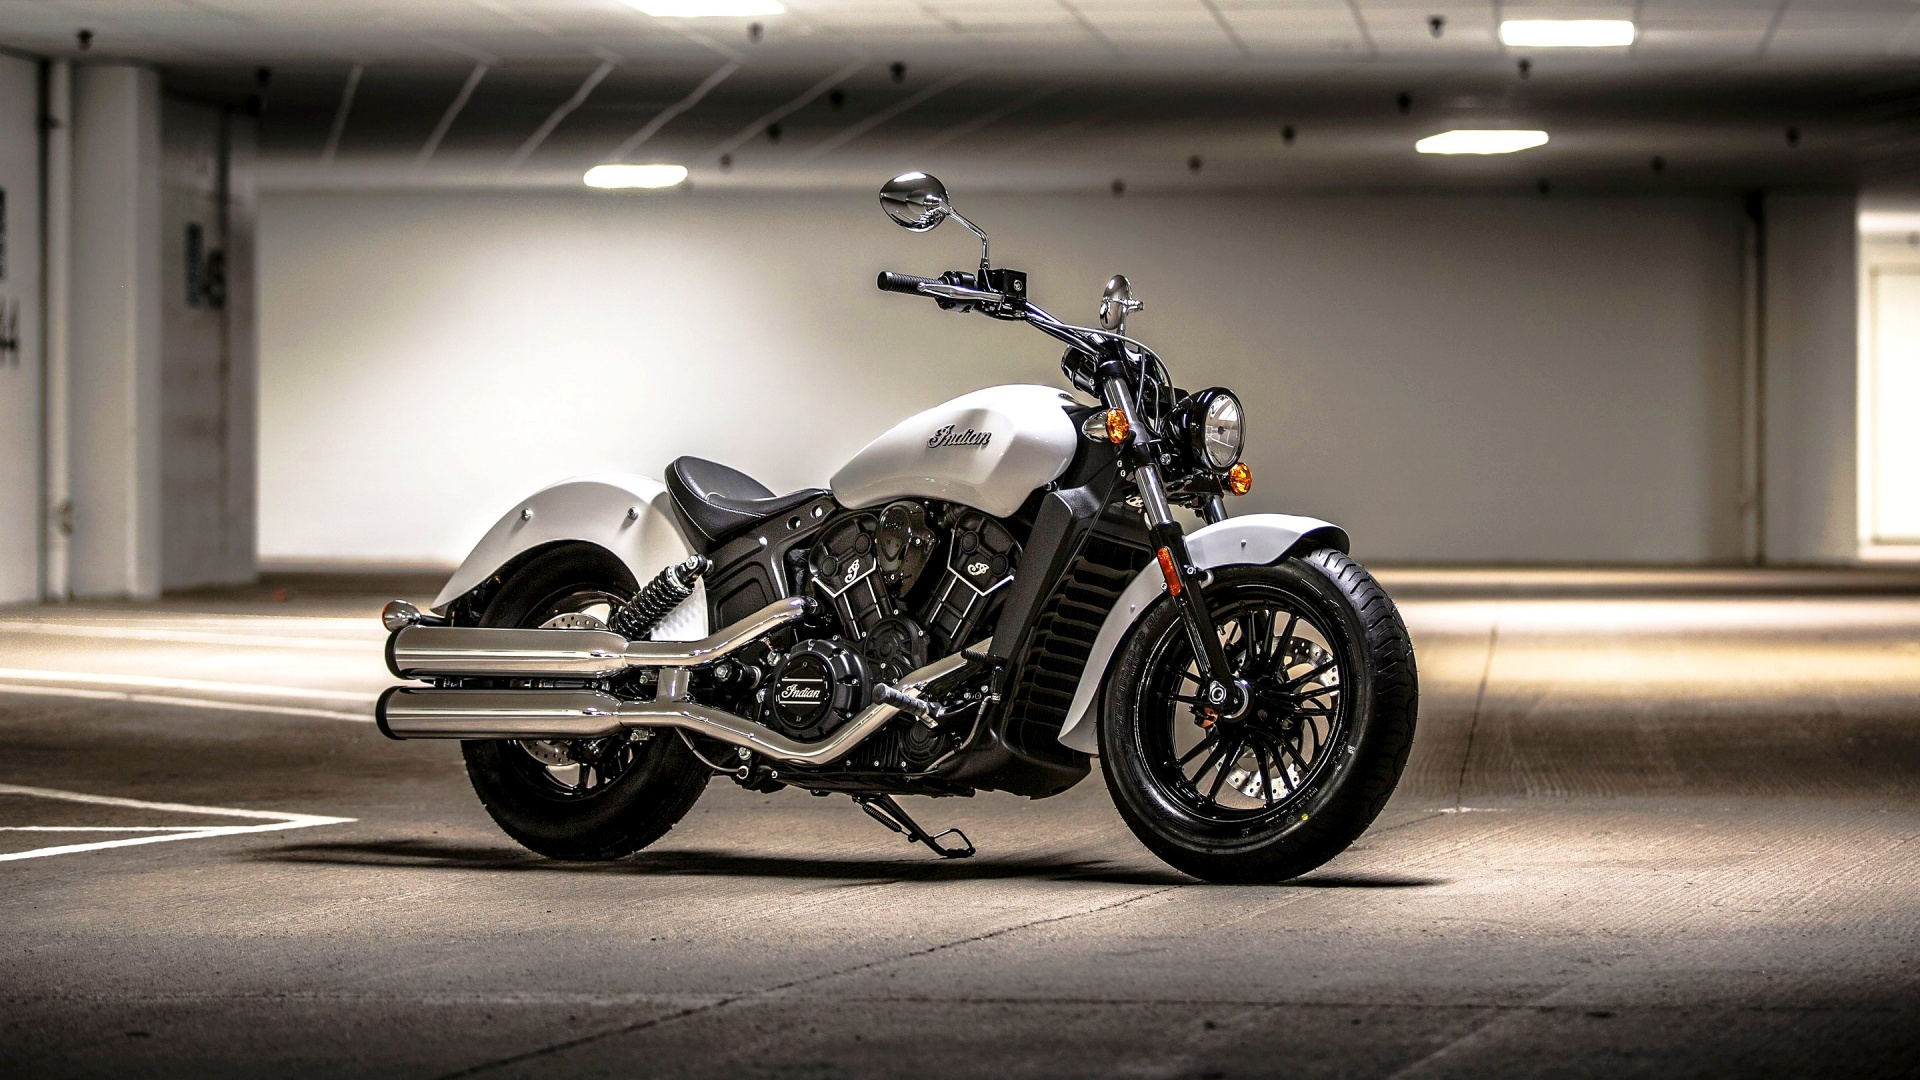 New Indian Motorcycles Wallpaper Picseriocom   Picseriocom 1920x1080